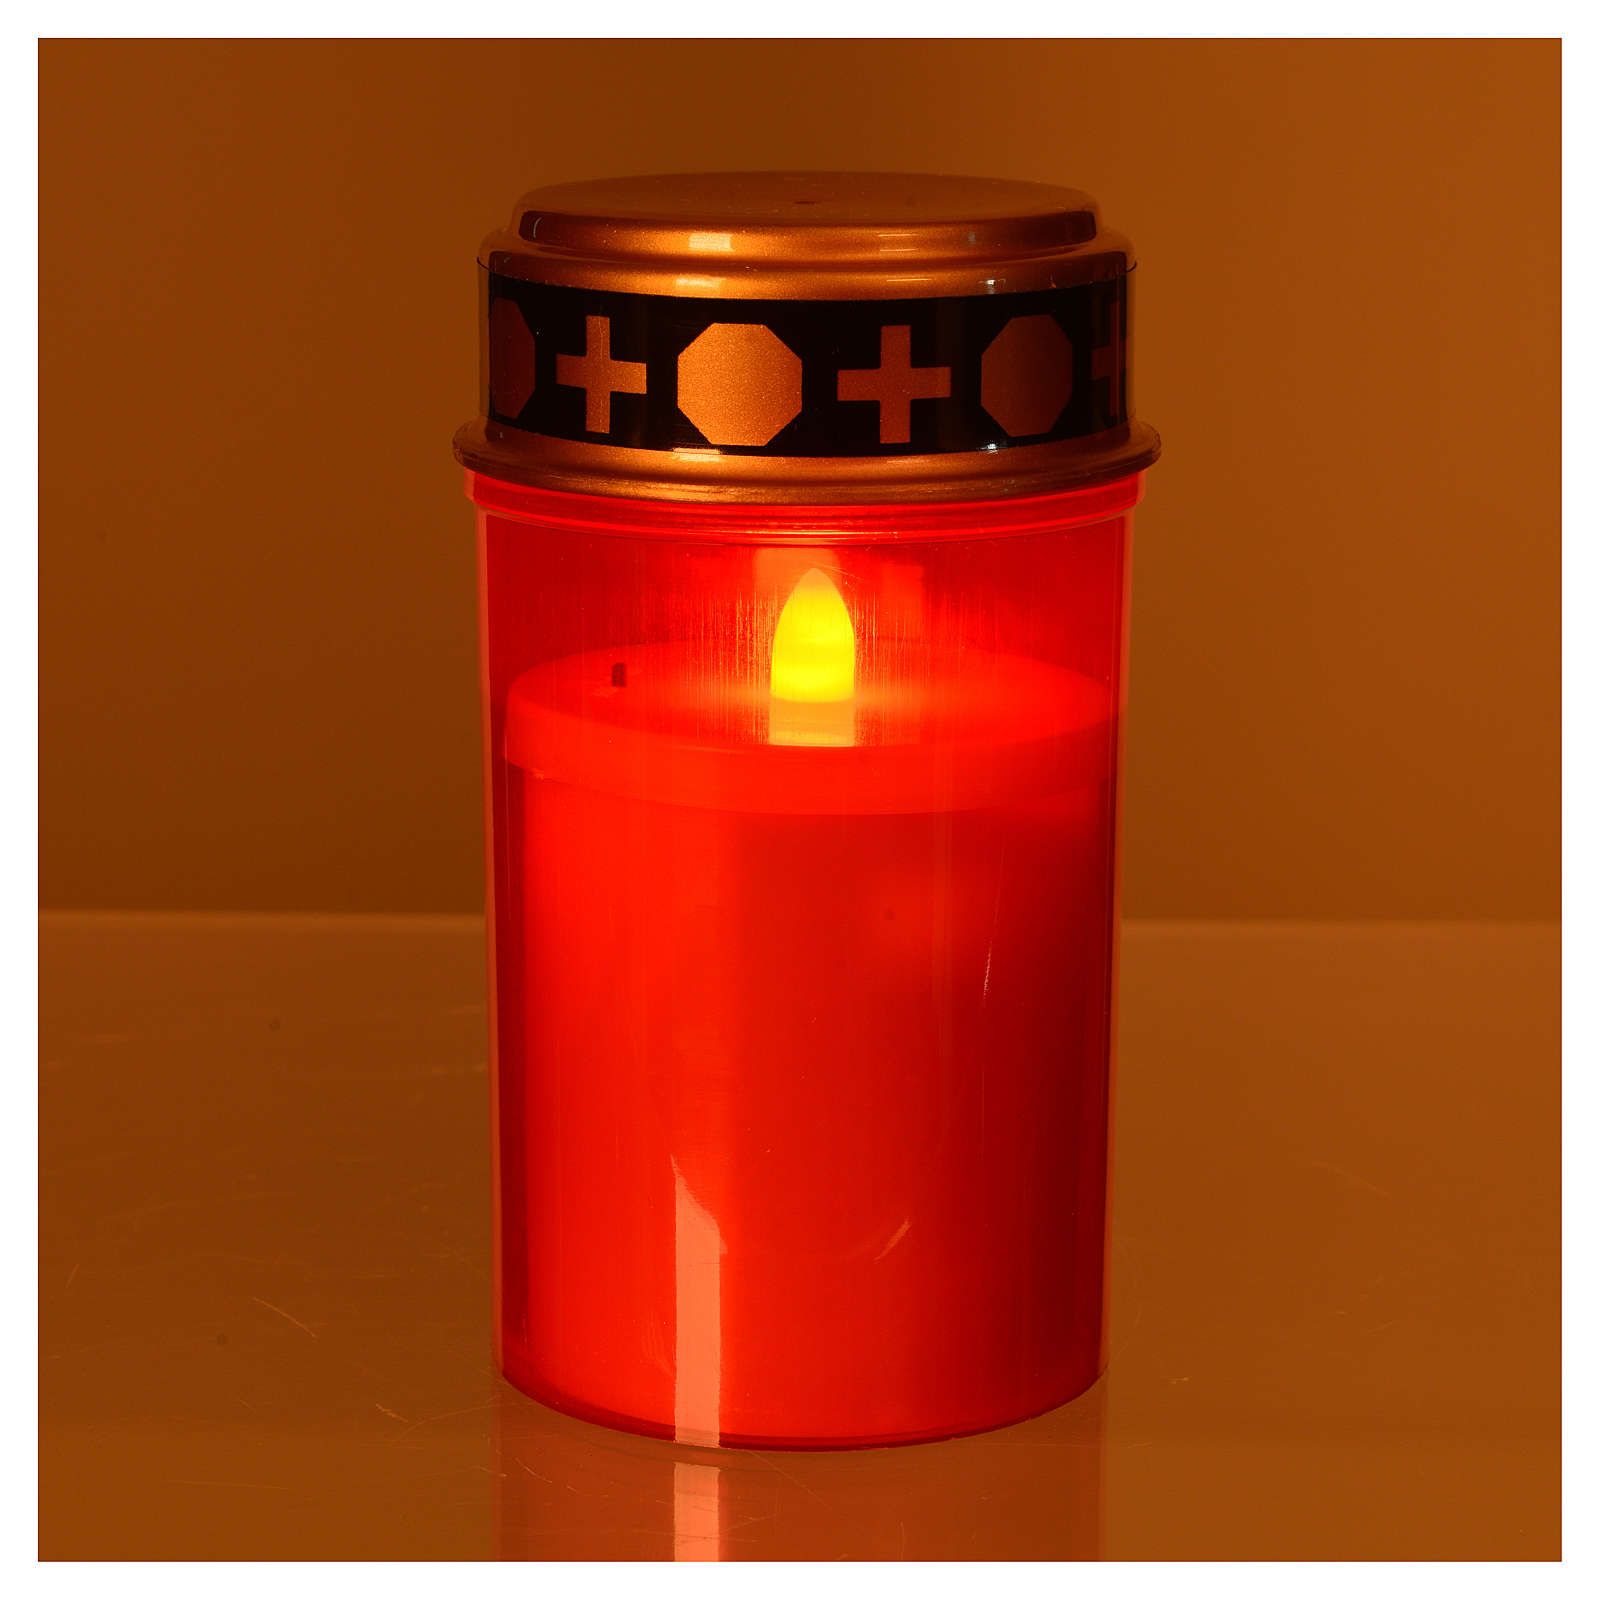 LED votive candle with red flickering light 3